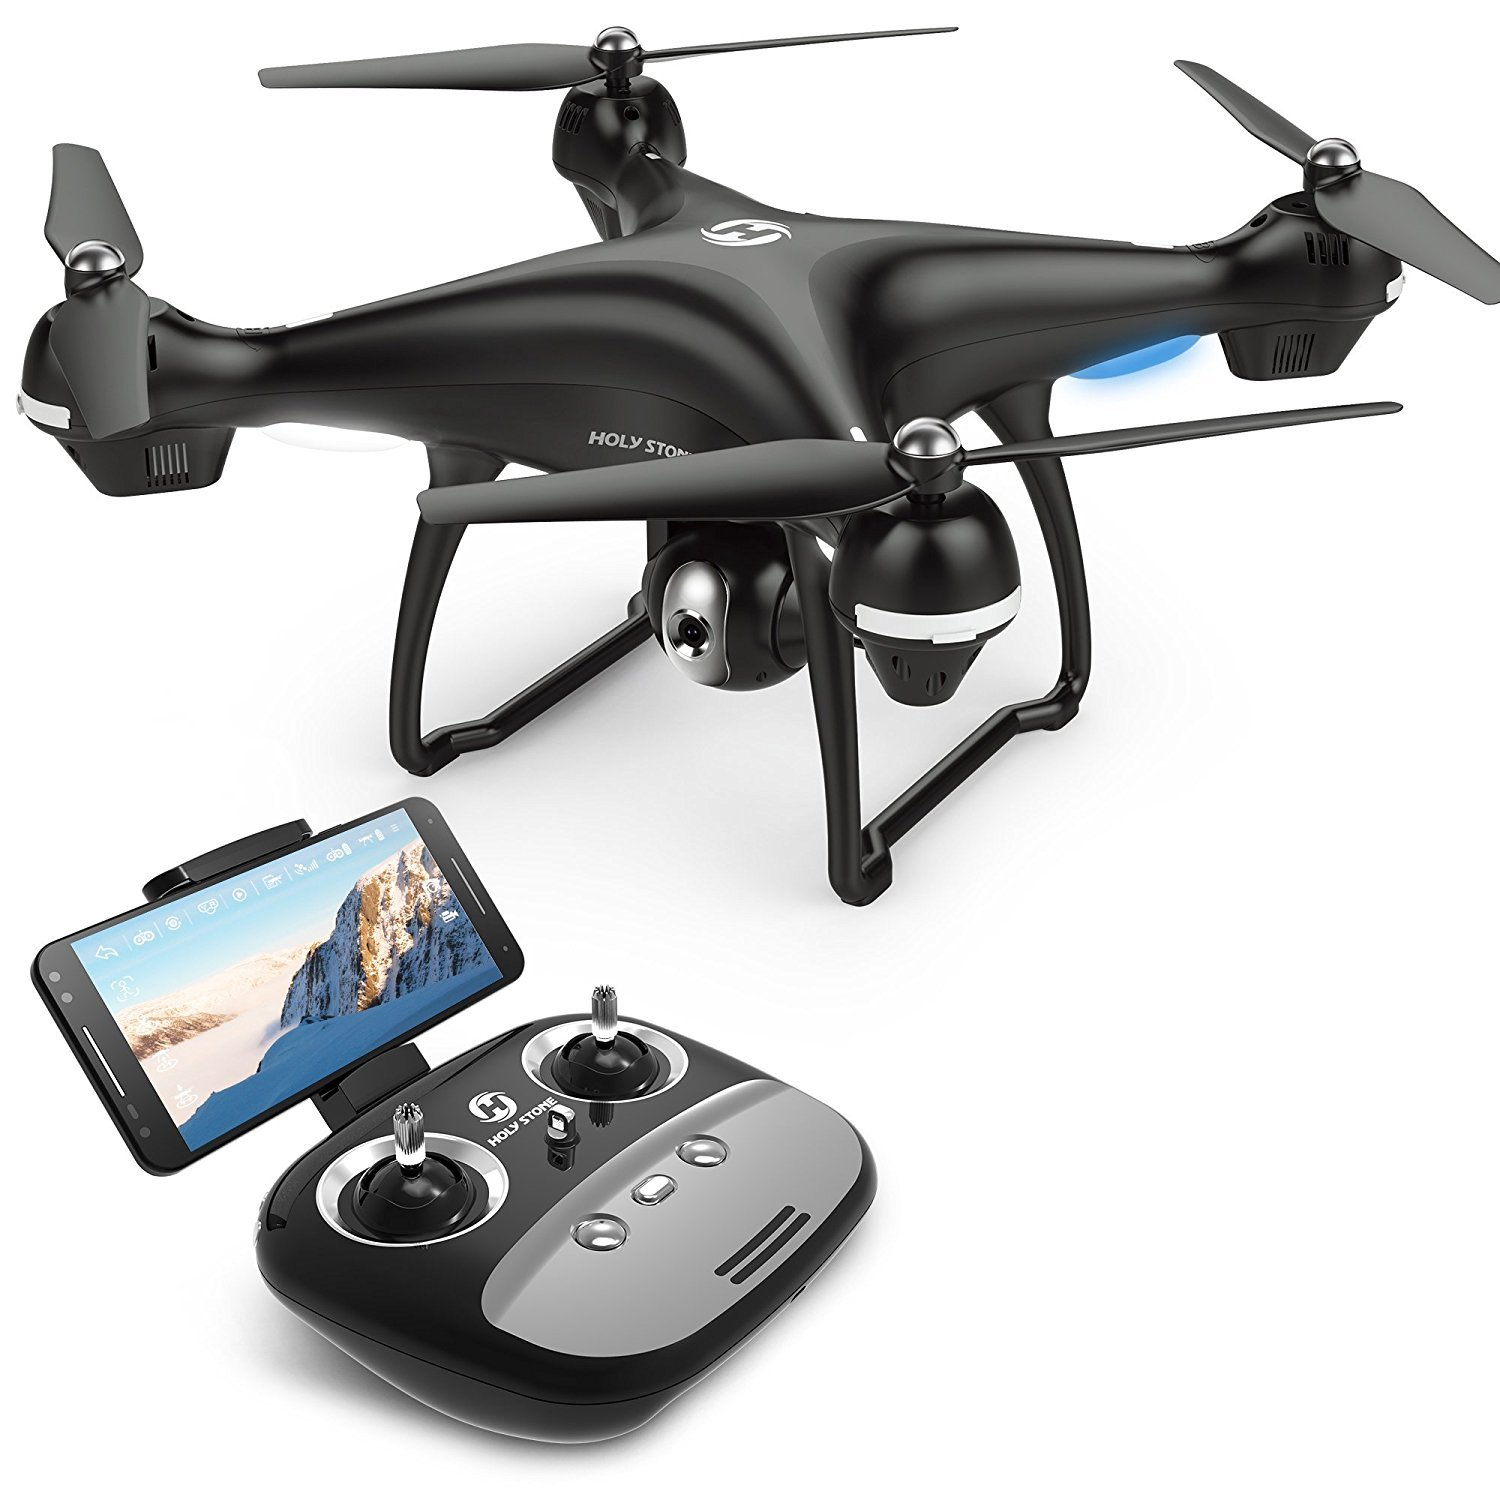 Holy Stone Quadcopter Adjustable Intelligent